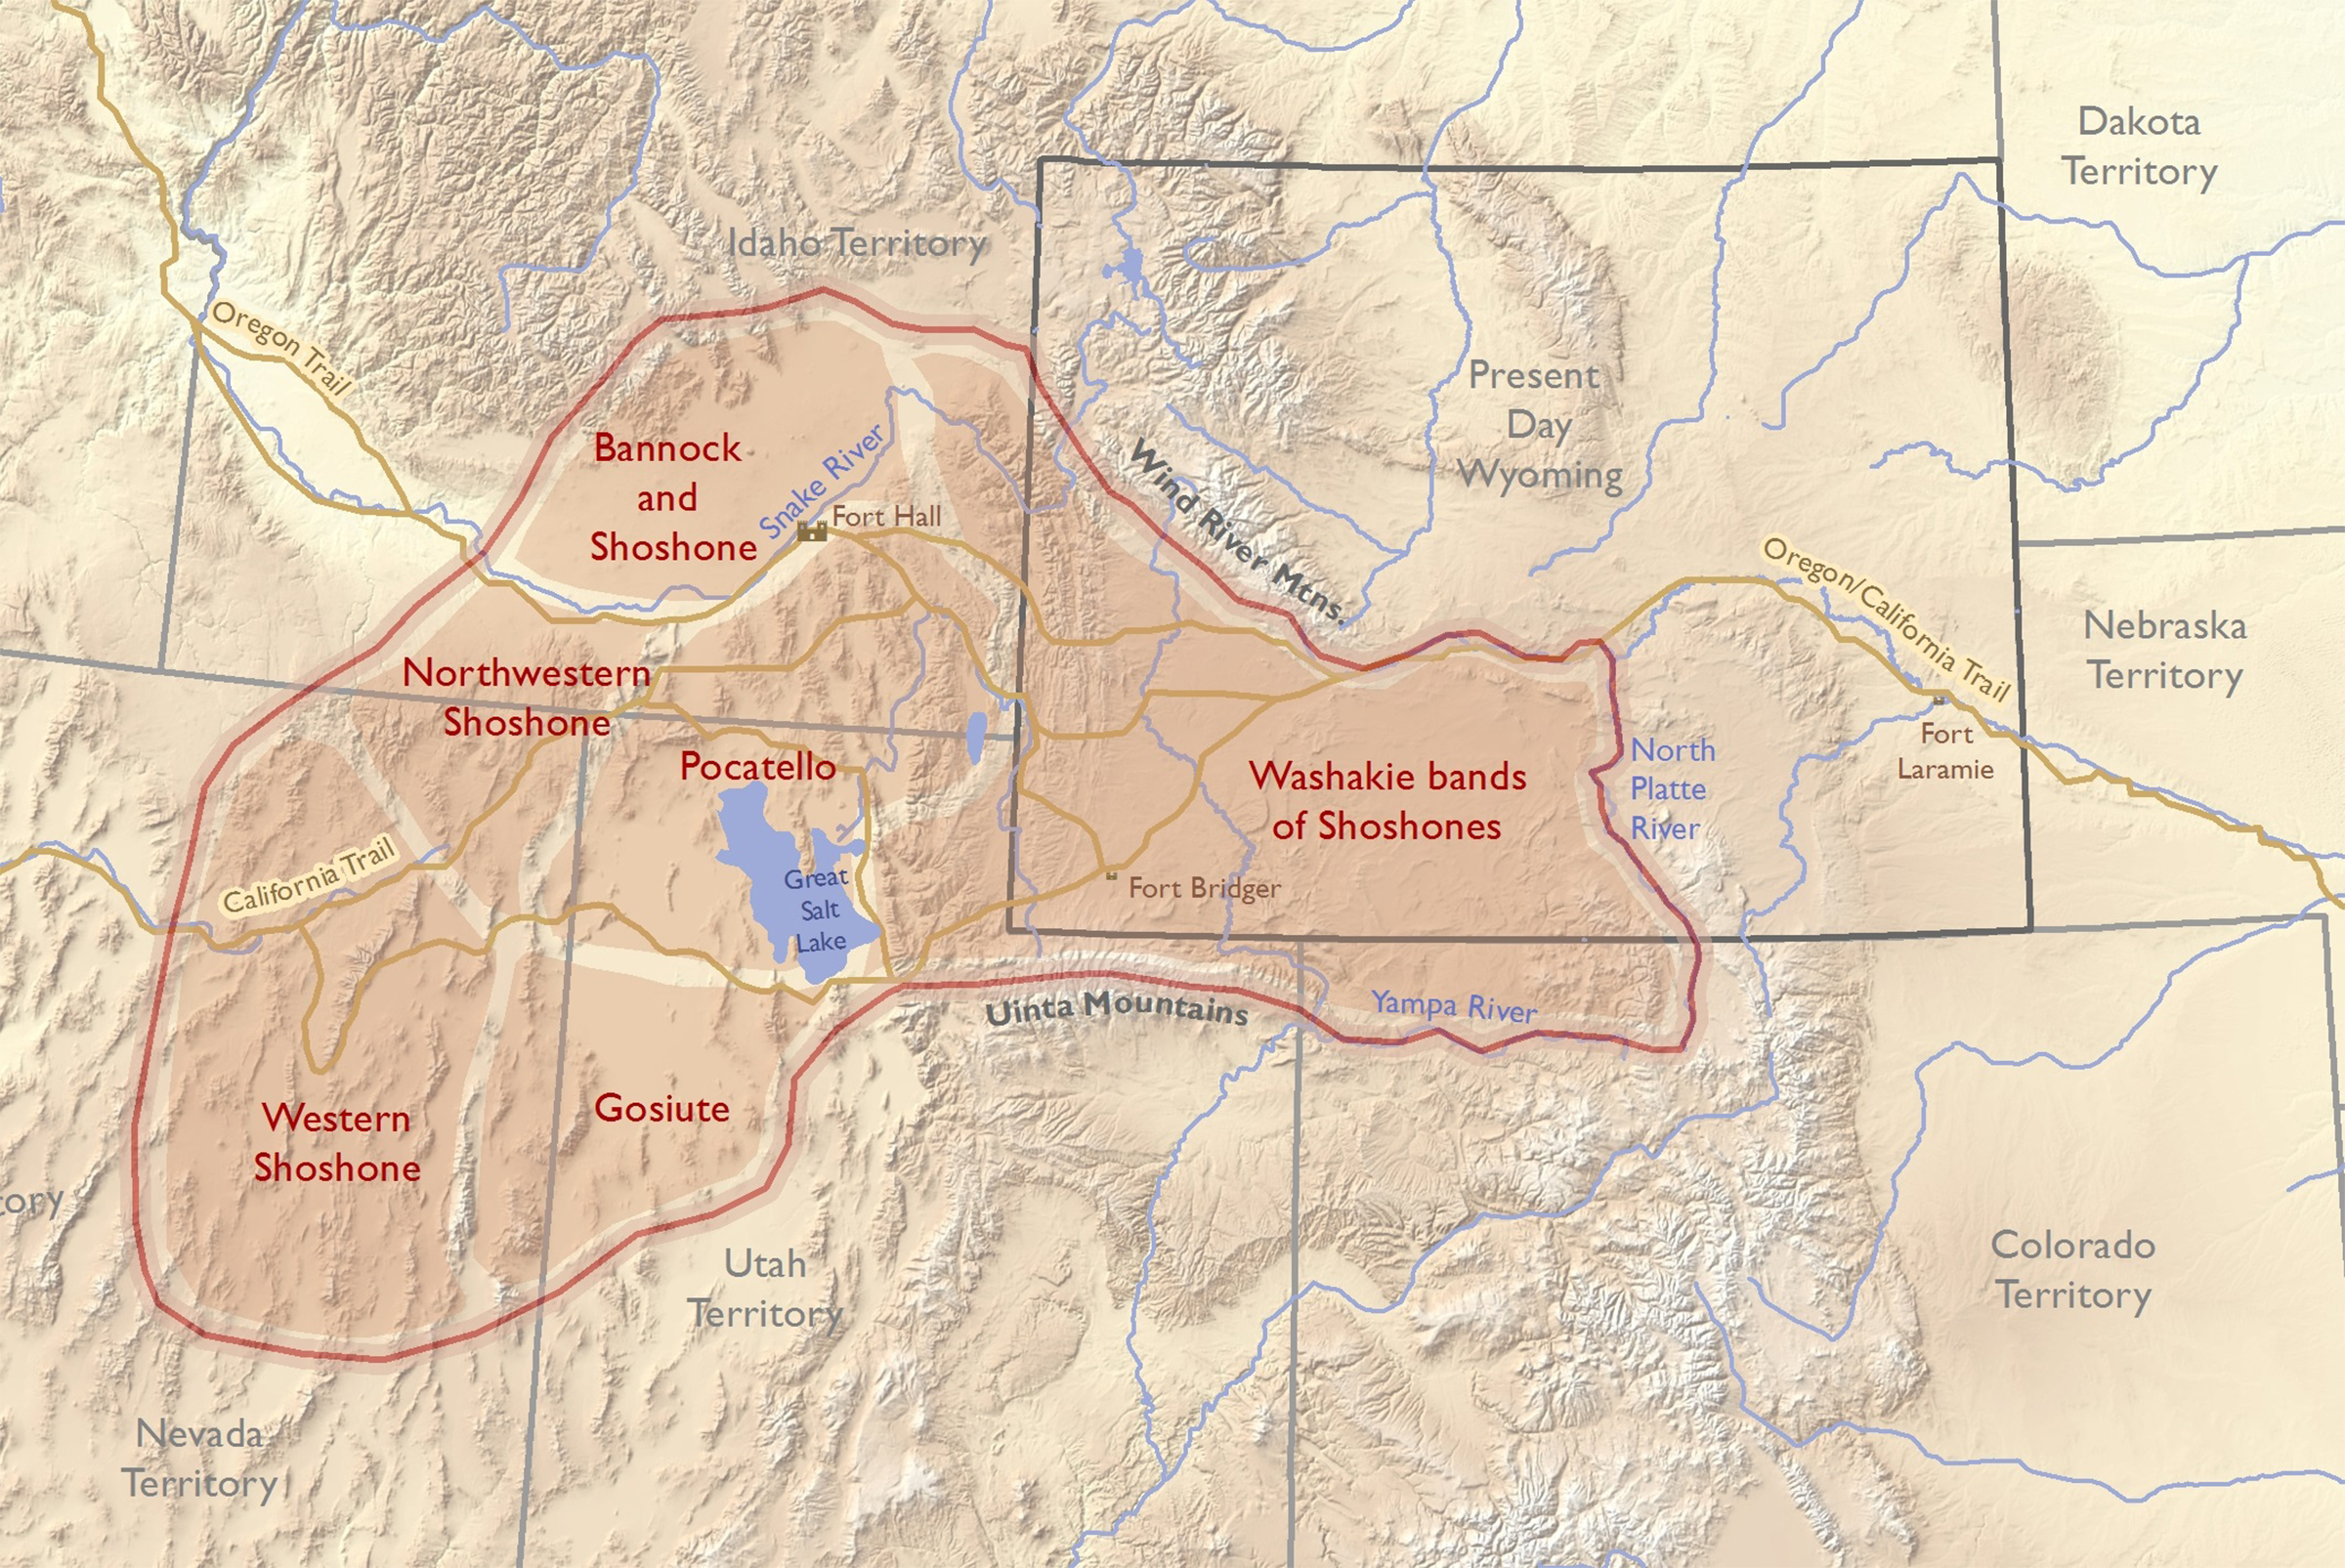 Shoshone Idaho Map.Coming To Wind River The Eastern Shoshone Treaties Of 1863 And 1868